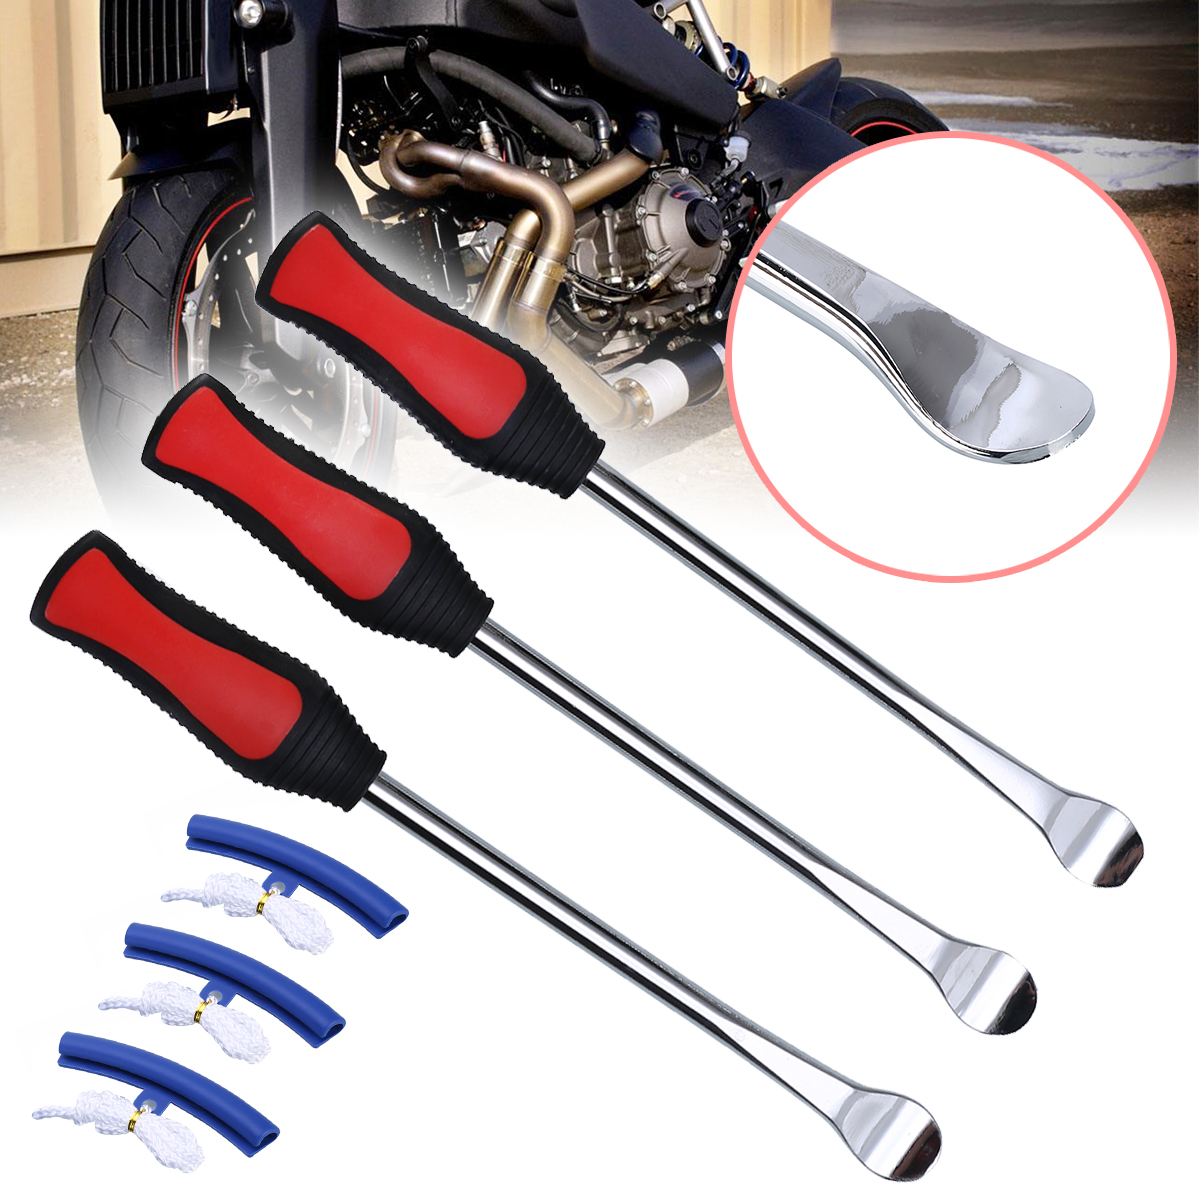 3PCS Tire Lever Tool Spoon Tire Repair Changing 3 Wheel Rim Protector Kit Strong Weather-Resistant Motorcycle Bike Accessories image